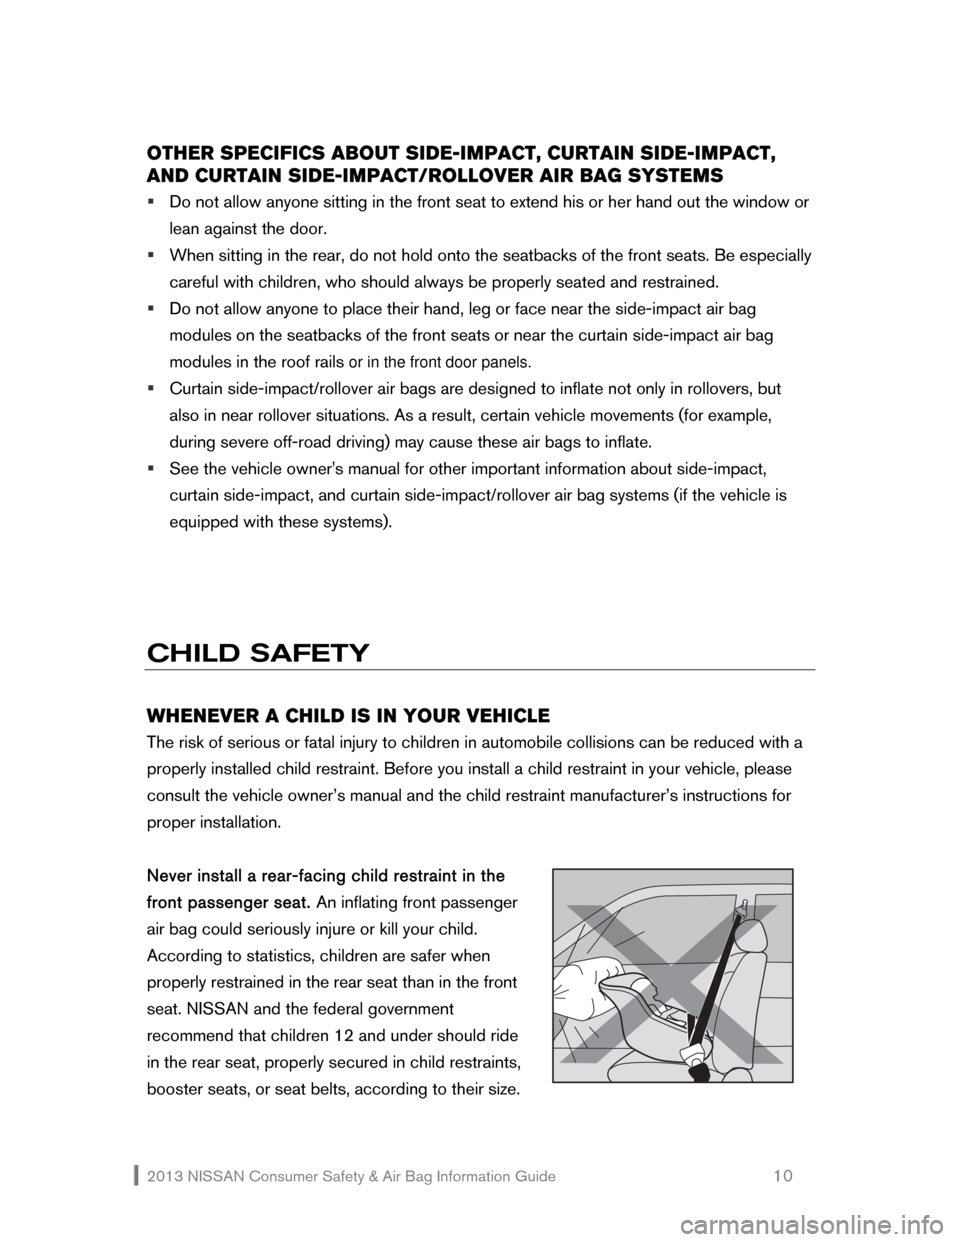 NISSAN ROGUE 2013 2.G Consumer Safety Air Bag Information Guide 2013 NISSAN Consumer Safety & Air Bag Information Guide                                                   10  OTHER SPECIFICS ABOUT SIDE-IMPACT, CURTAIN SIDE-IMPACT,  AND CURTAIN SIDE-IMPACT/ROLLOVER